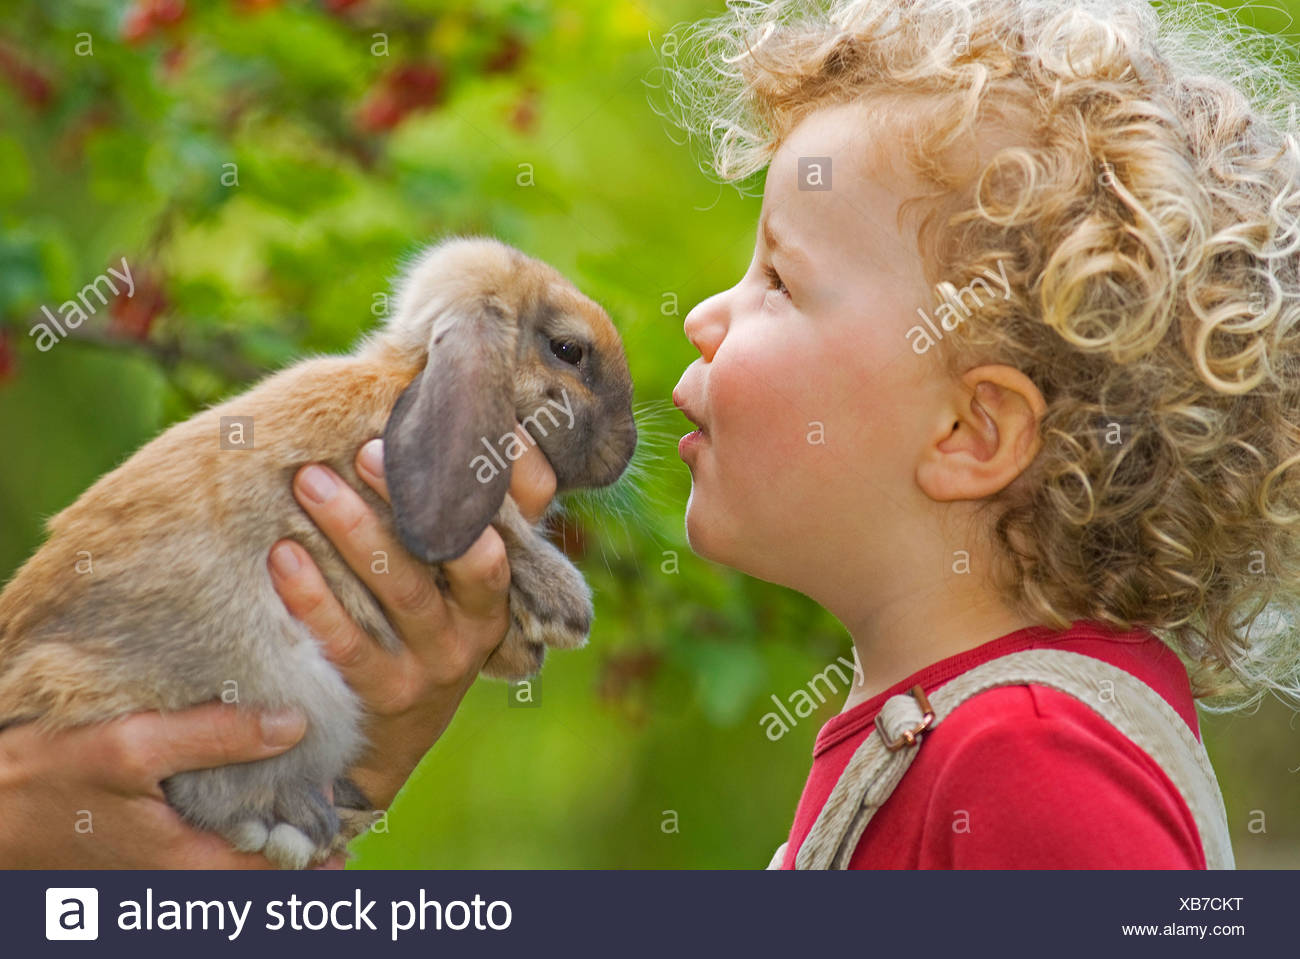 Blonde girl (4-5) with curly hair holding rabbit, portrait - Stock Image